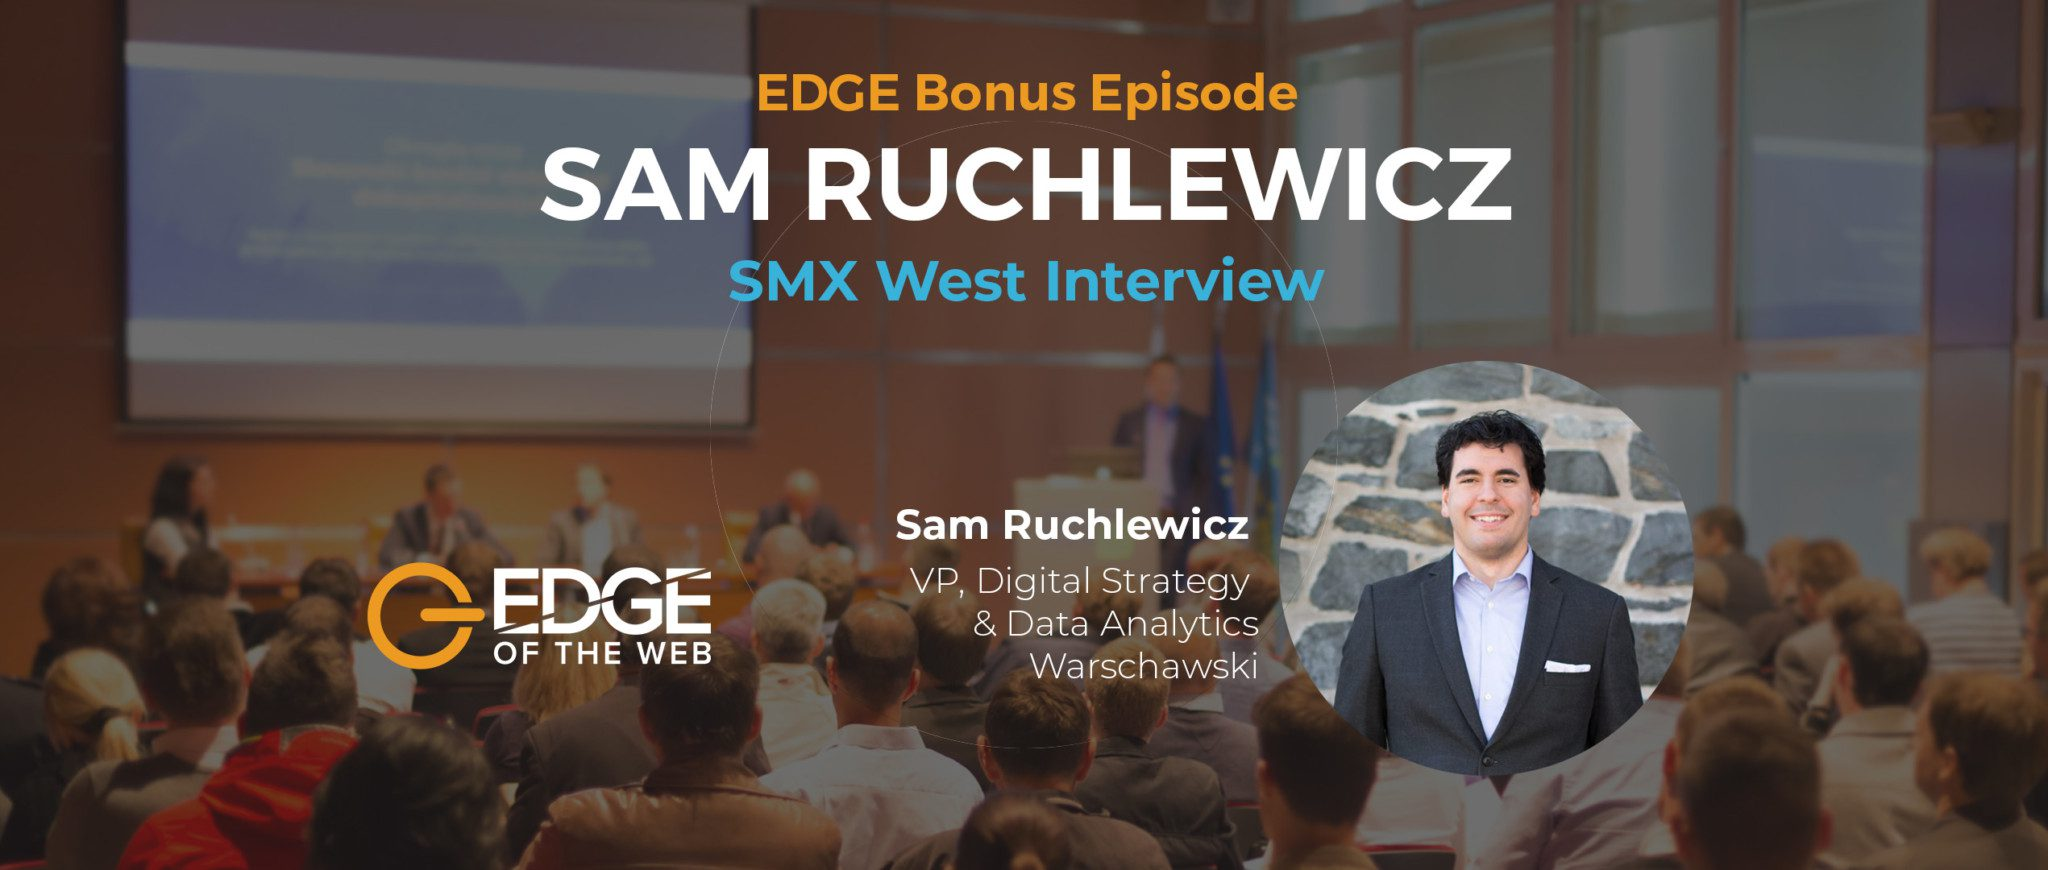 EDGE at SMX West with Sam Ruchlewicz